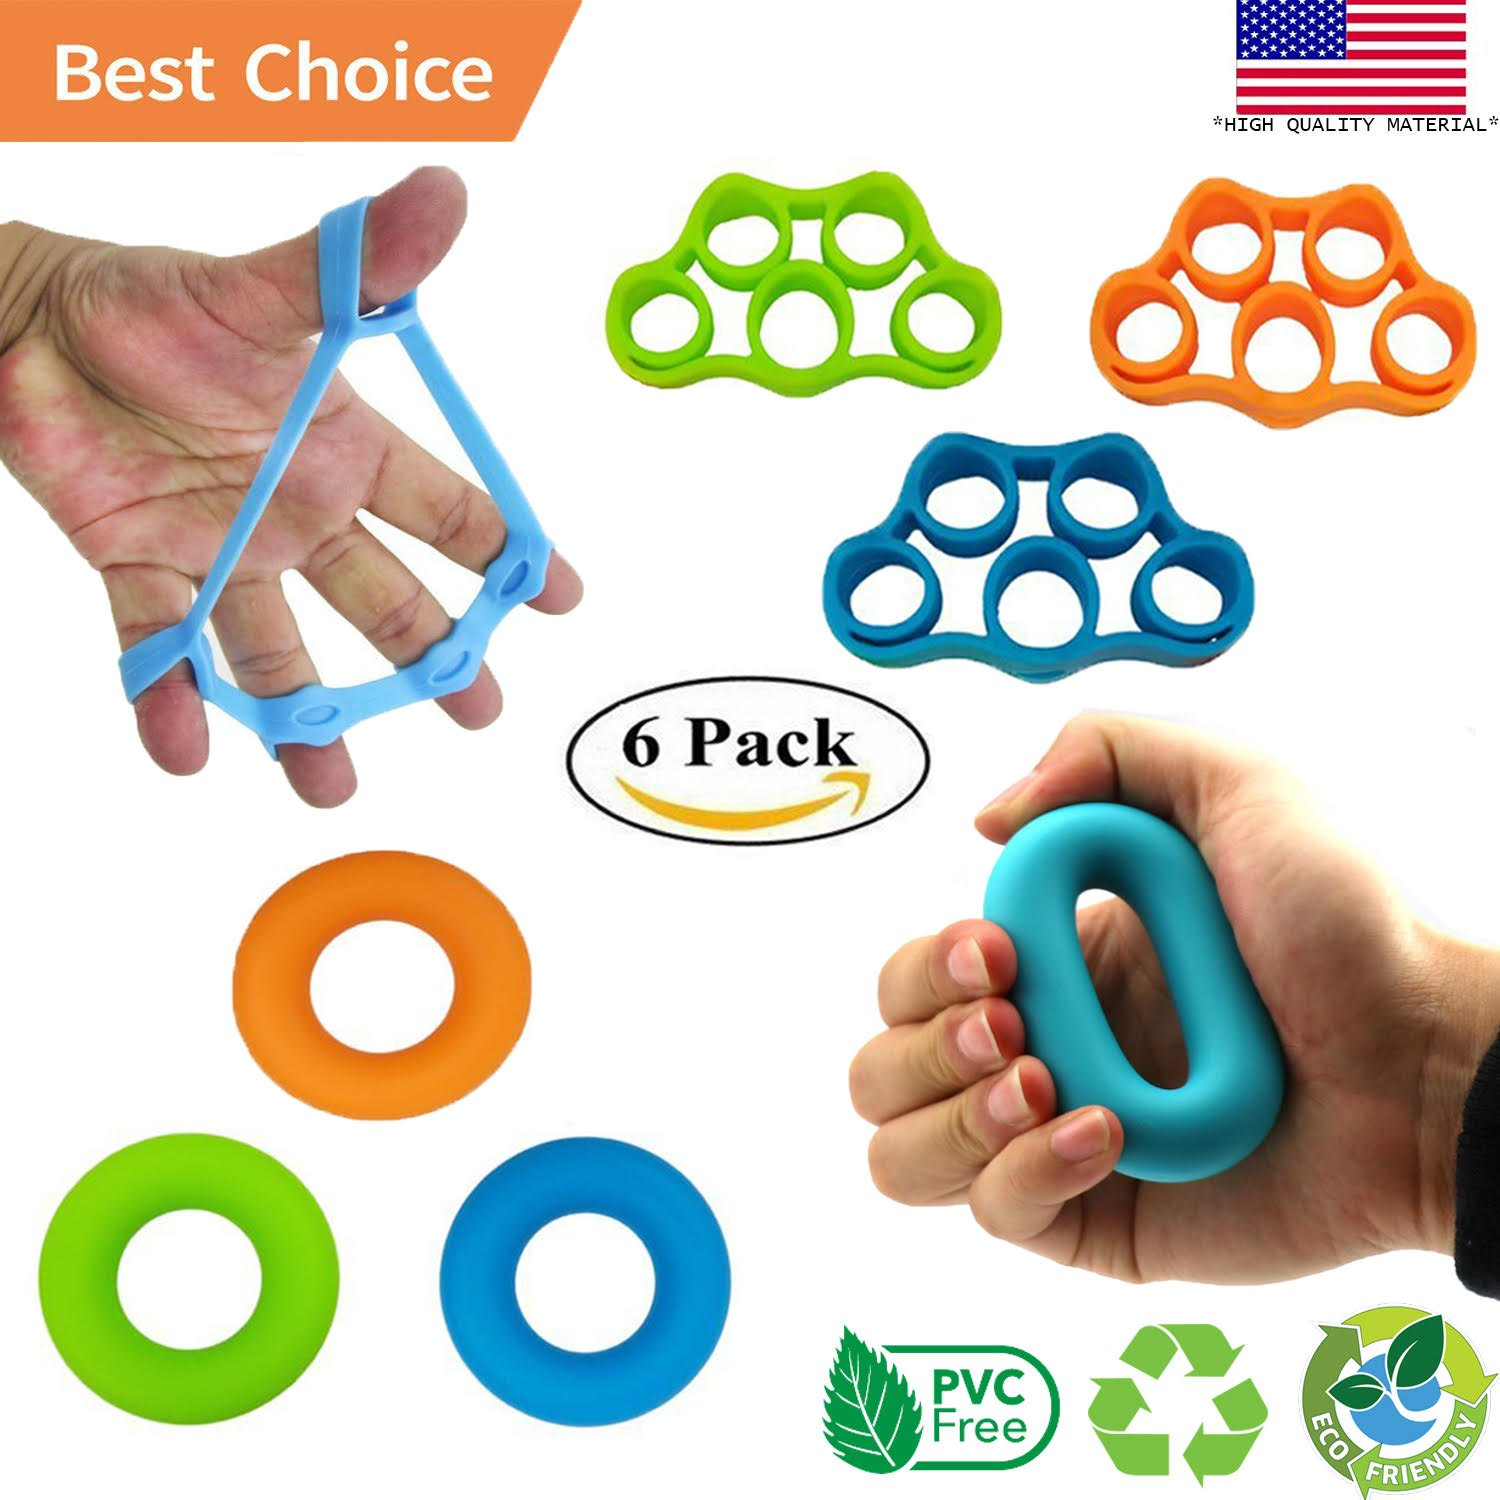 Powerband Finger Stretcher Hand Resistance Bands Hand Grip Strengthener Hand Extensor Exerciser Grip Strength Trainer for Guitar Finger, Climbing, Golf Grip, Carpal Tunnel and Hand Therapy 6 PCS Set